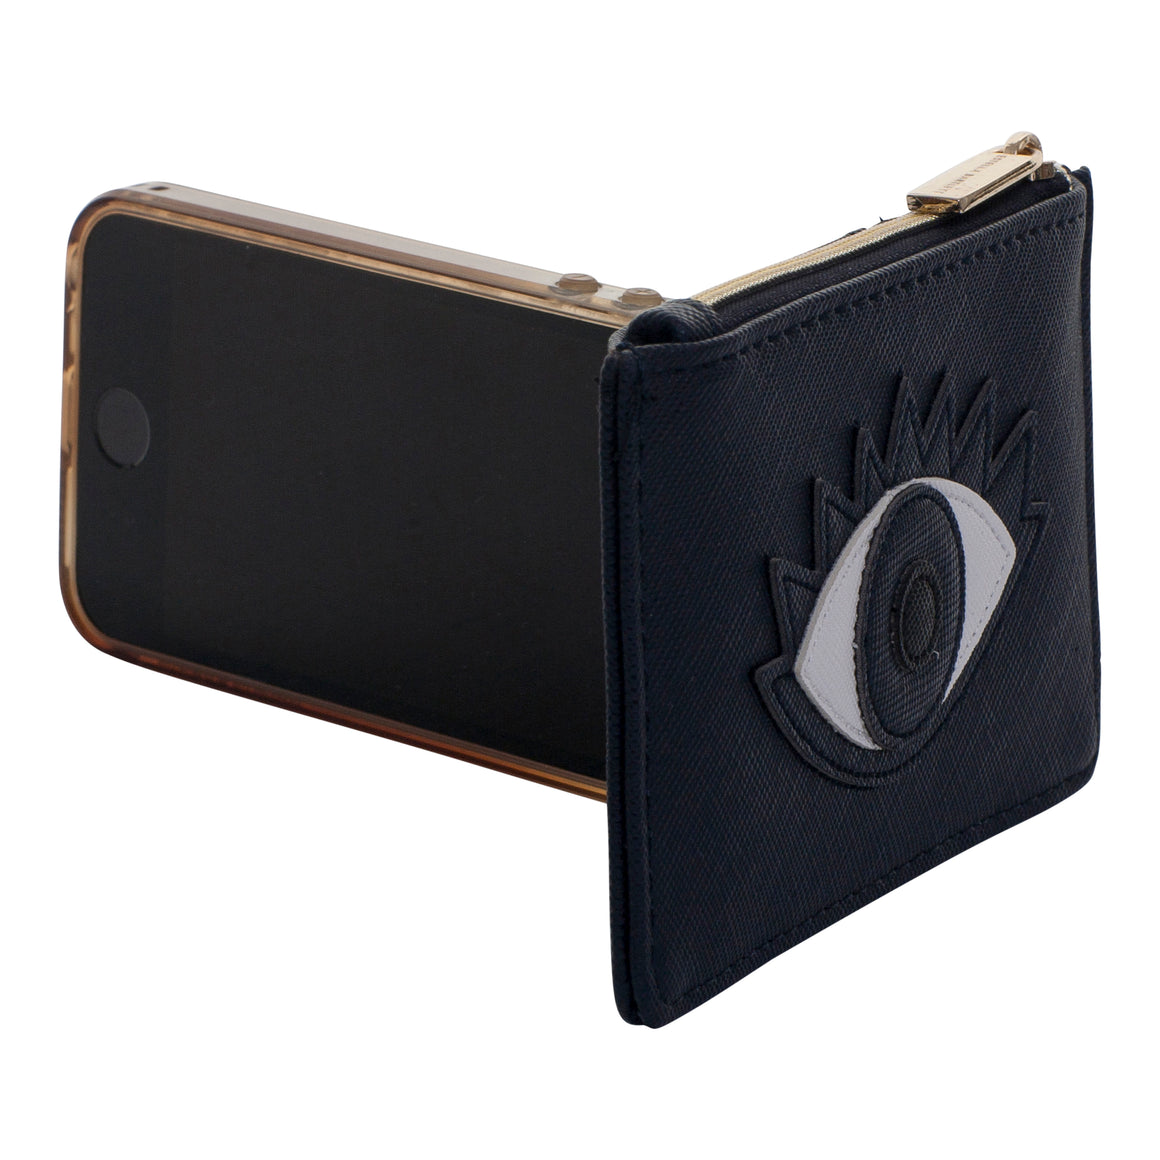 Eye Card Purse for Women in Black